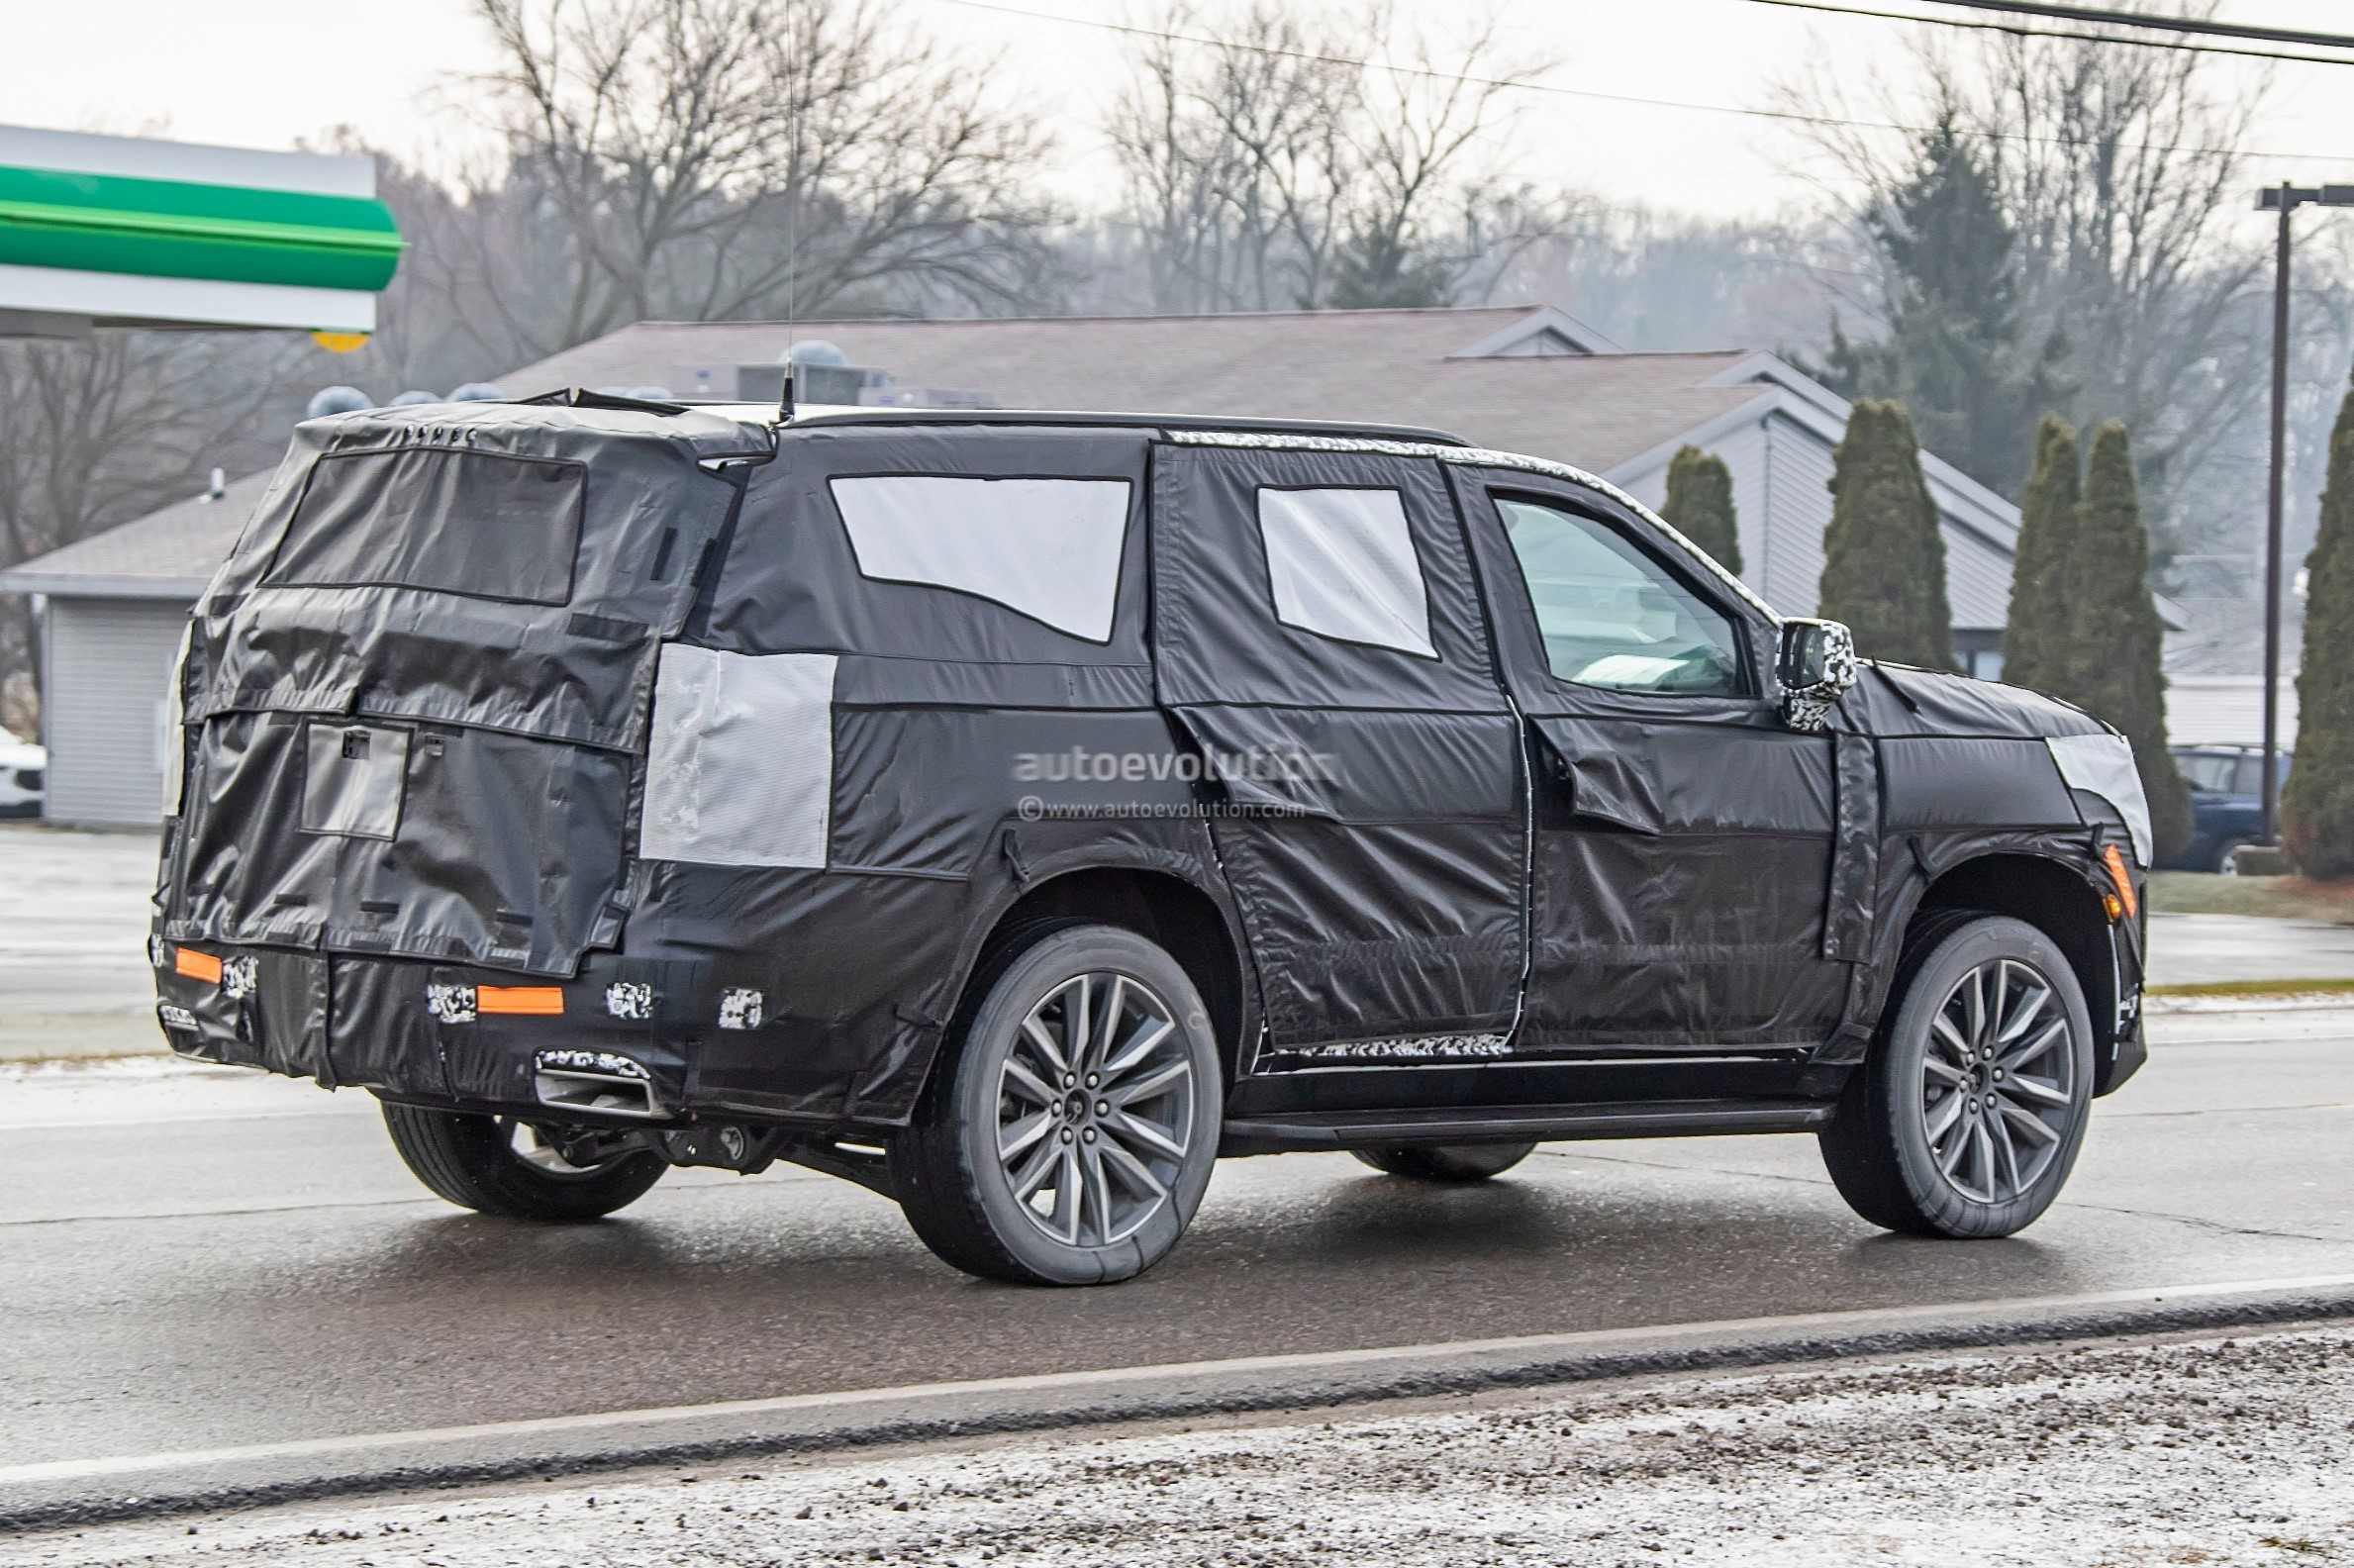 2021 cadillac escalade will be revealed this december